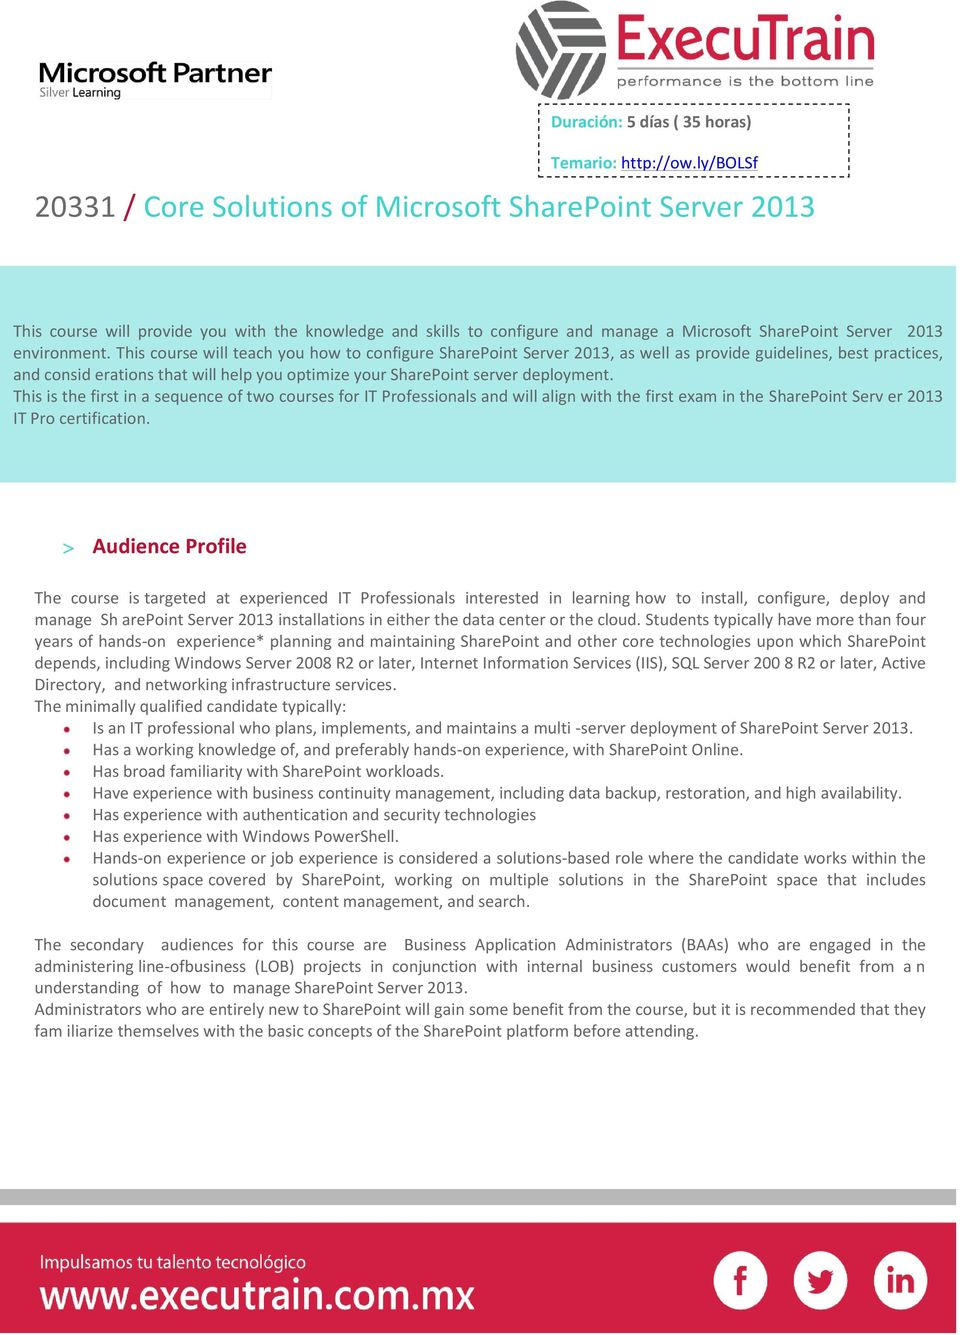 This course will teach you how to configure SharePoint Server 2013, as well as provide guidelines, best practices, and consid erations that will help you optimize your SharePoint server deployment.